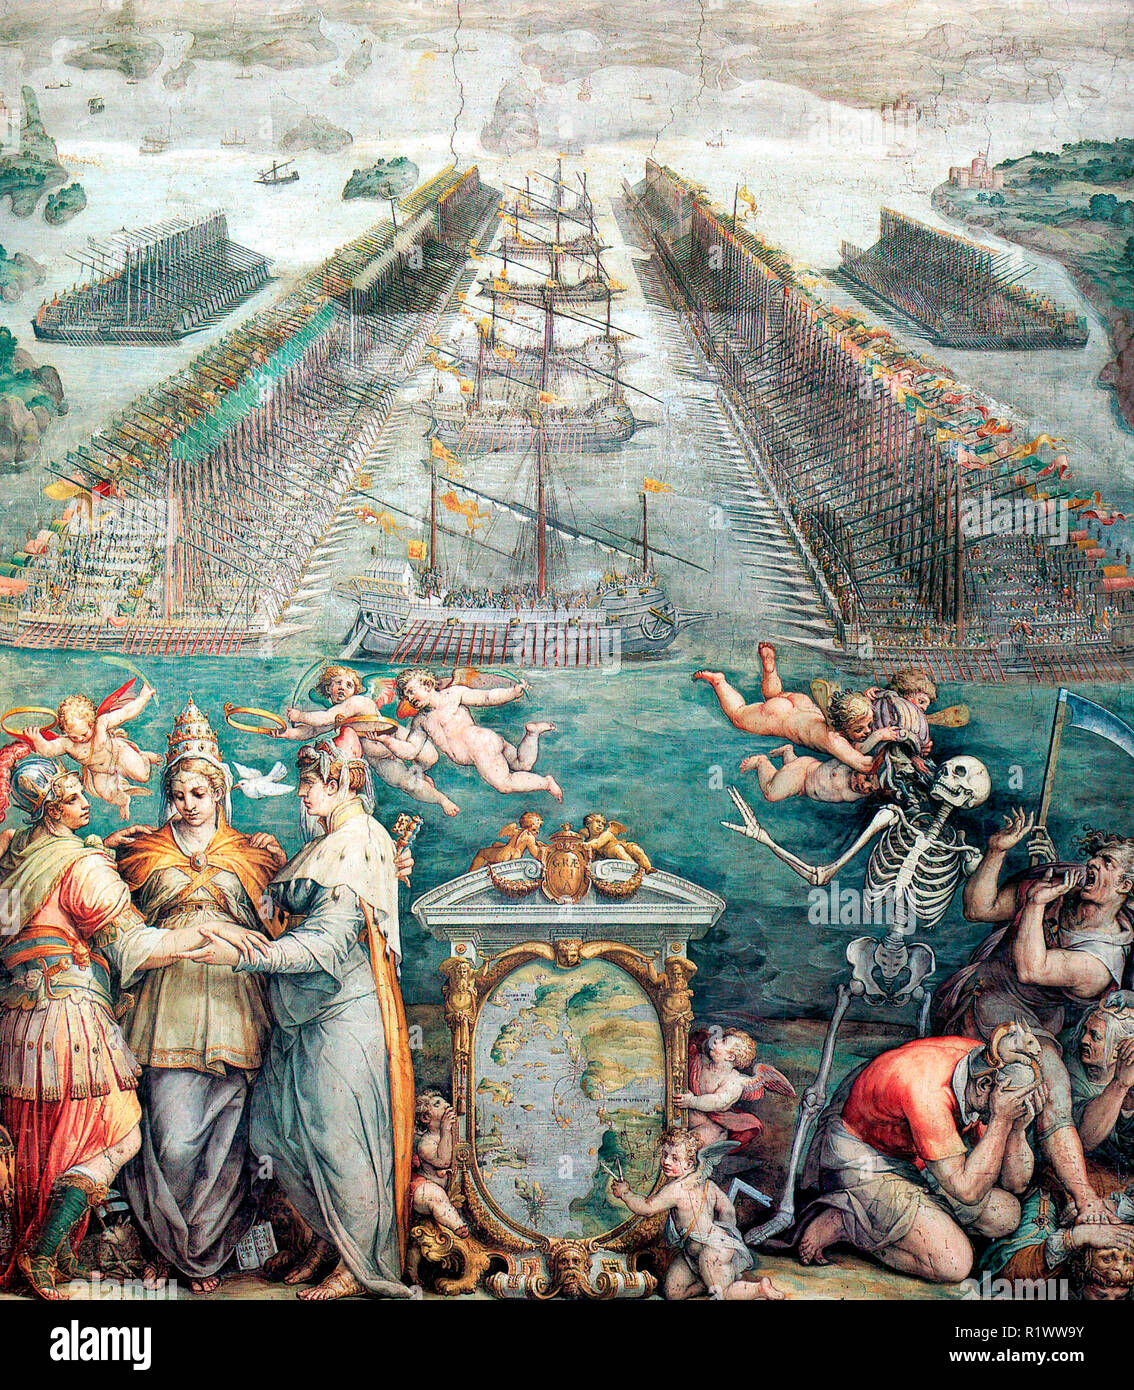 The Battle of Lepanto. The combined Christian navel forces (Holy League) of Spain, Venice, and the Papacy defeated the Turkish fleet at Lepanto, October 7, 1571. Vasari was commissioned by Pope Pius to commemorate the event in the Sala Regia in the Vatican. The foreground includes an allegorical representation of the three Christian powers. 1572 - Stock Image